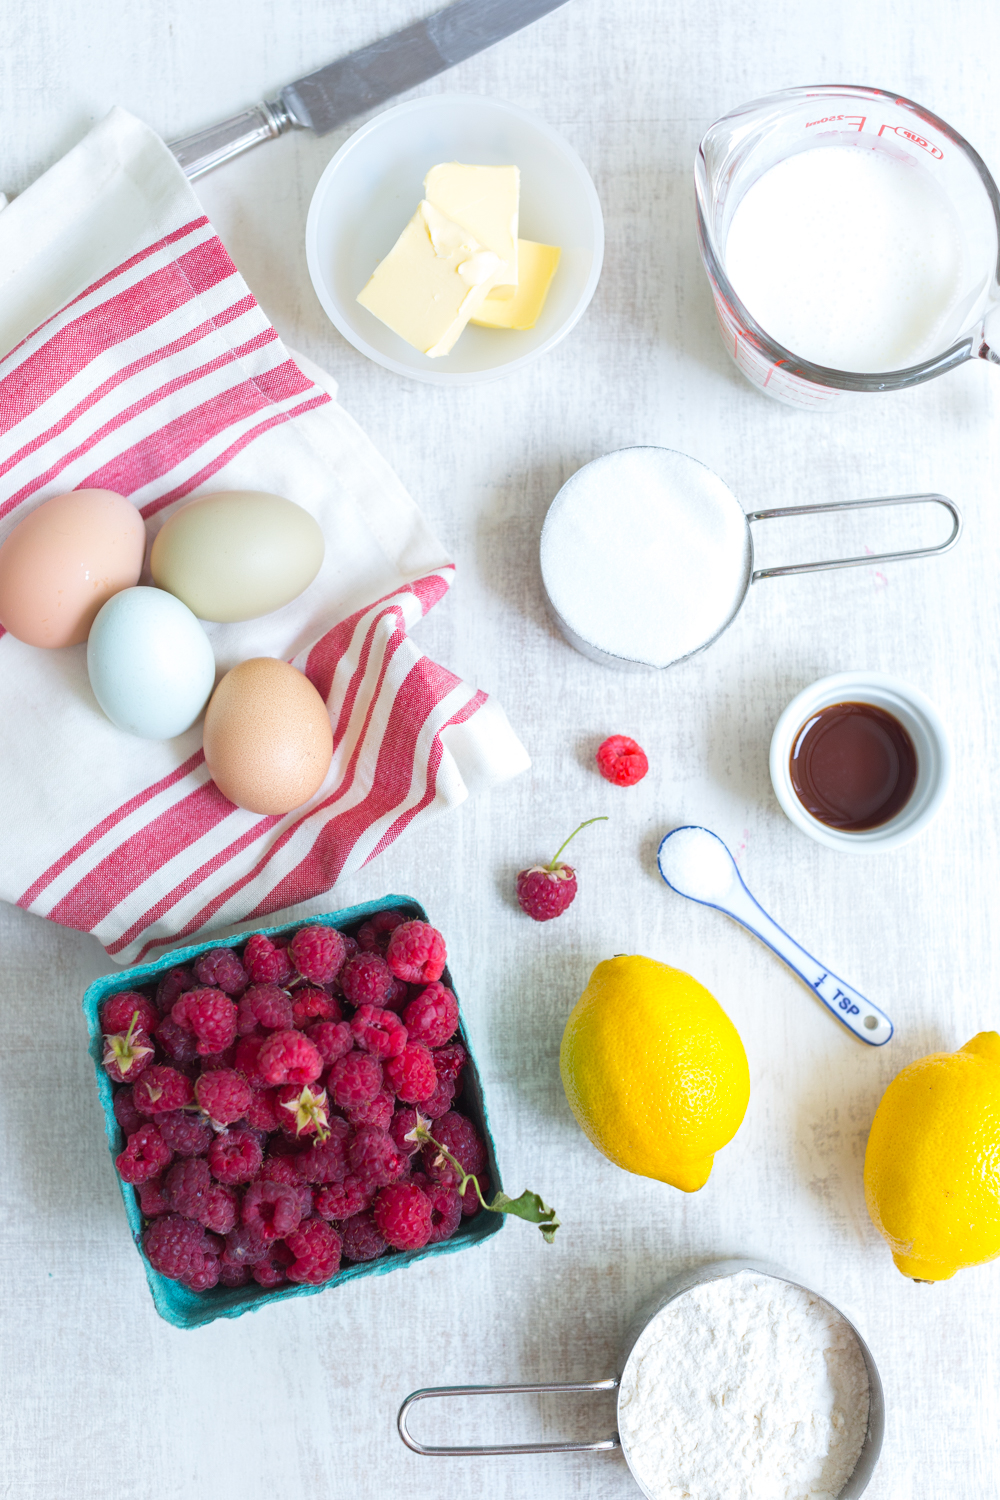 The best recipes are always simple recipes with high quality ingredients like these farm fresh eggs and freshly picked farm stand raspberries from Folded Hill